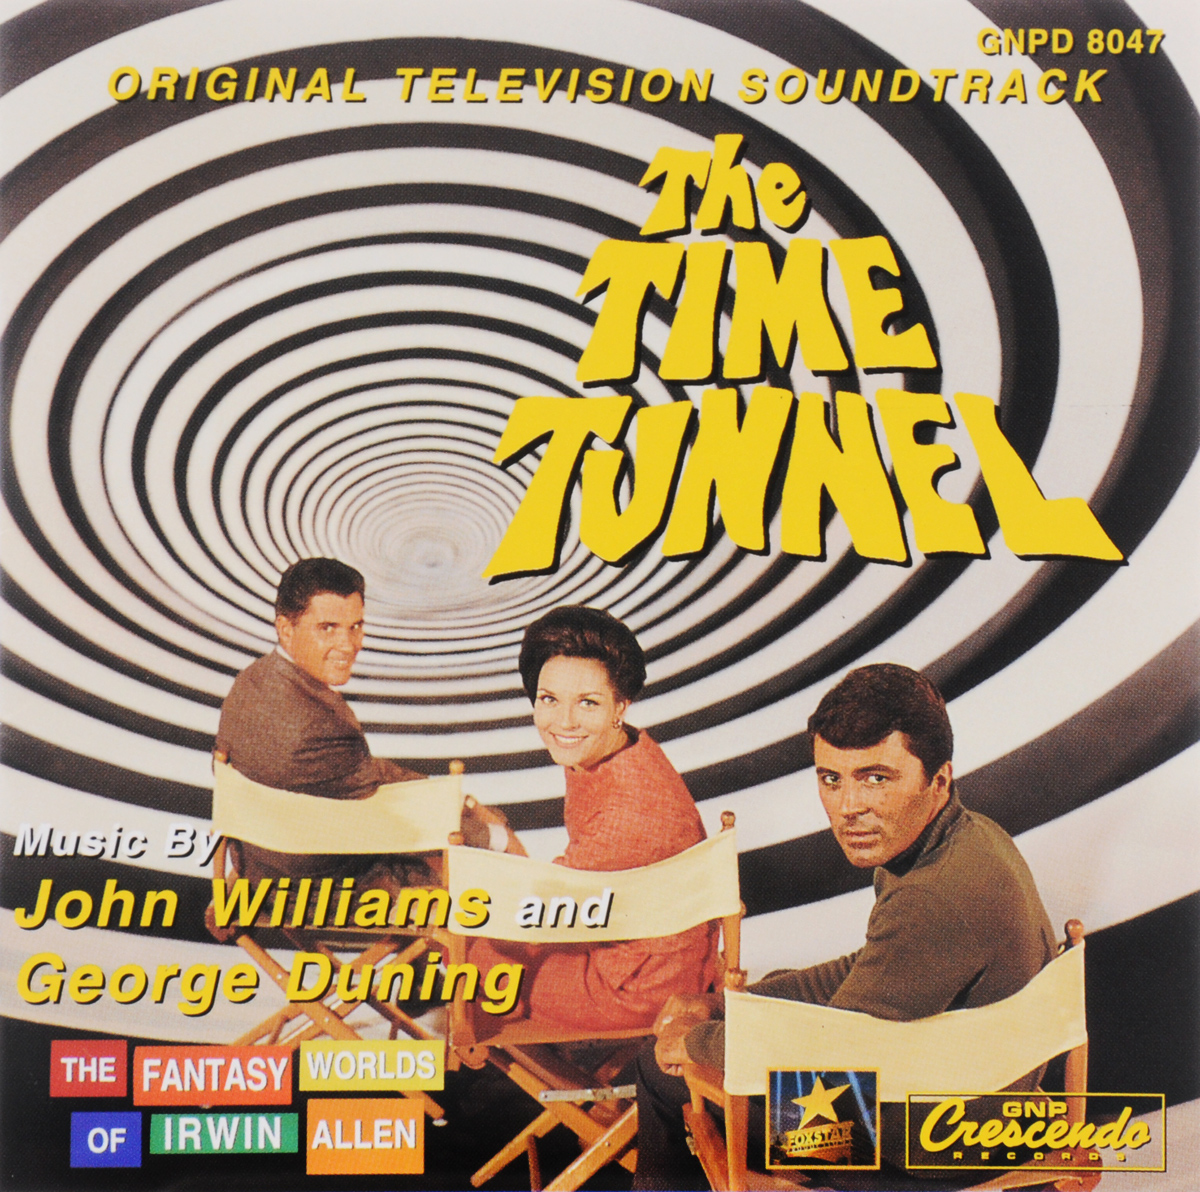 The Fantasy Worlds Of Irwin Allen. Vol. 4. The Time Tunnel. Original Television Soundtrack